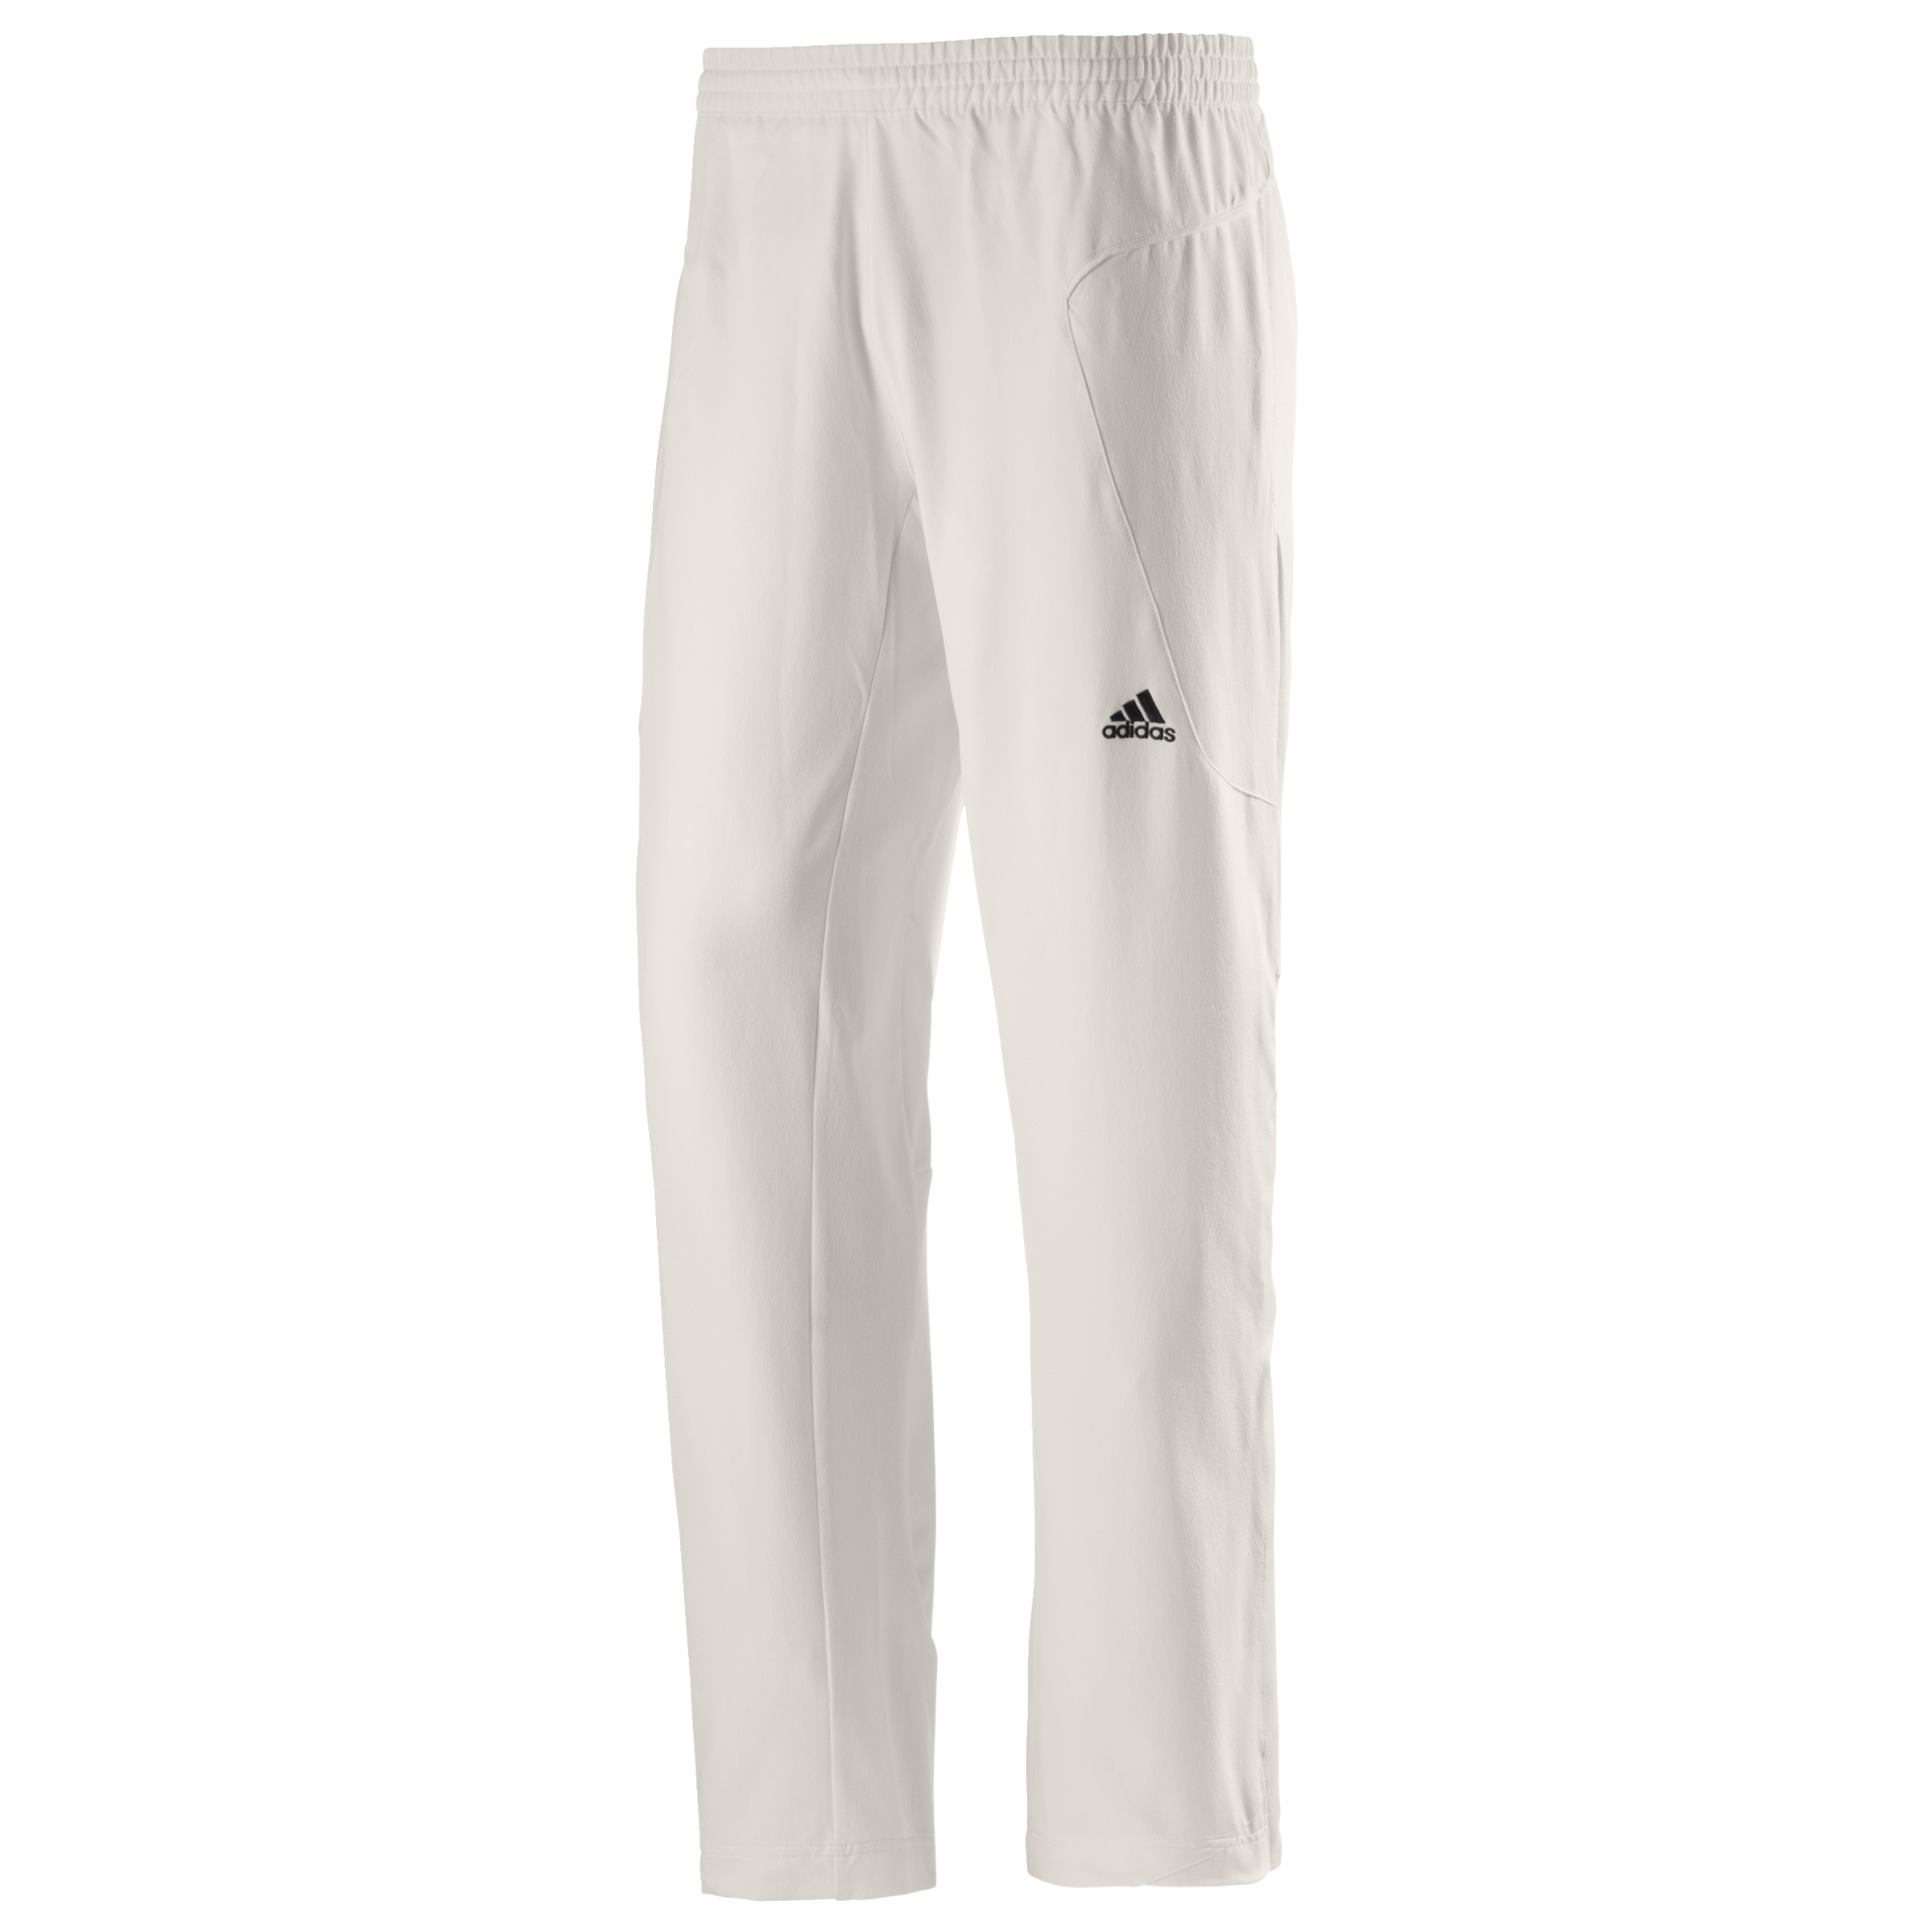 4750aba58f2d1 Details about adidas Mens Cricket Whites Batting Bowling Fielding Pant  Trouser White